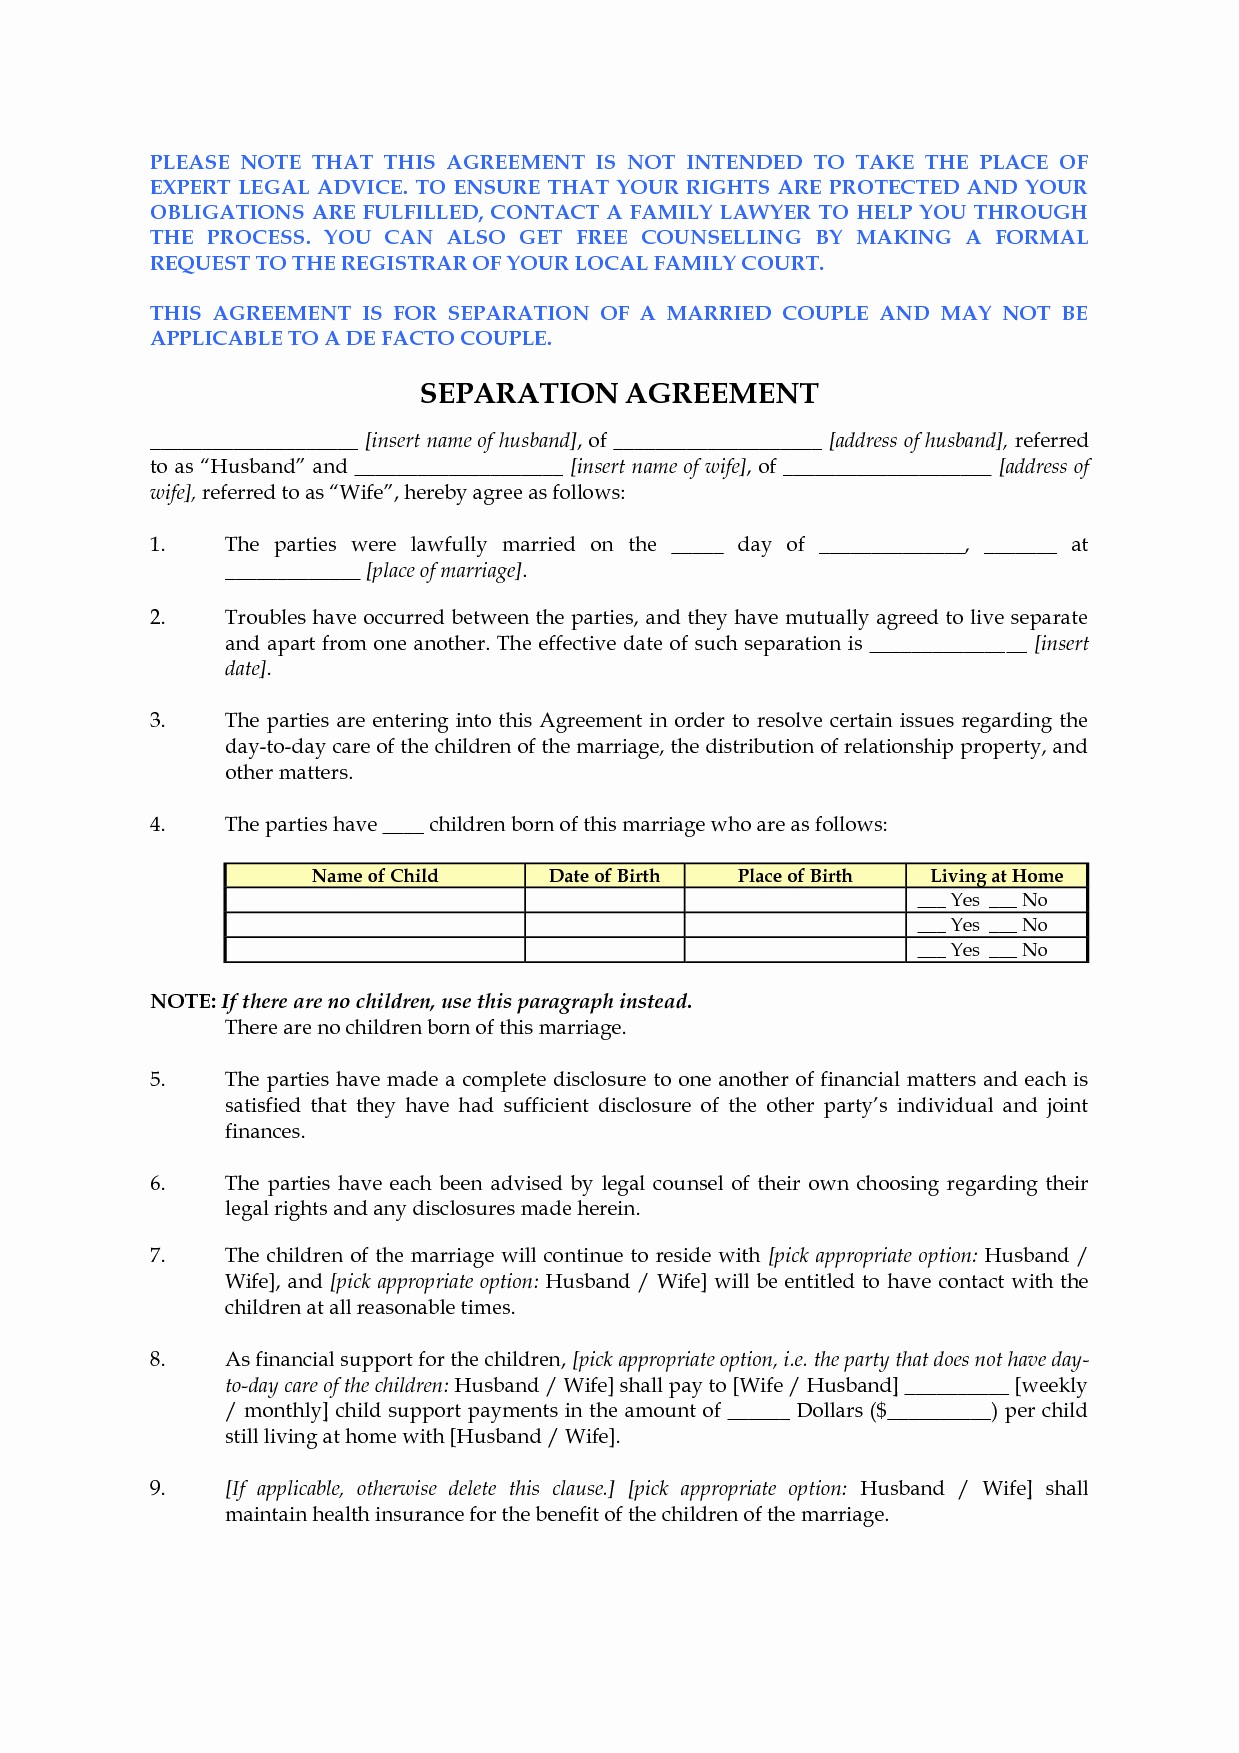 Free Separation Agreement Template New Best S Of Free Marital Separation Agreement forms